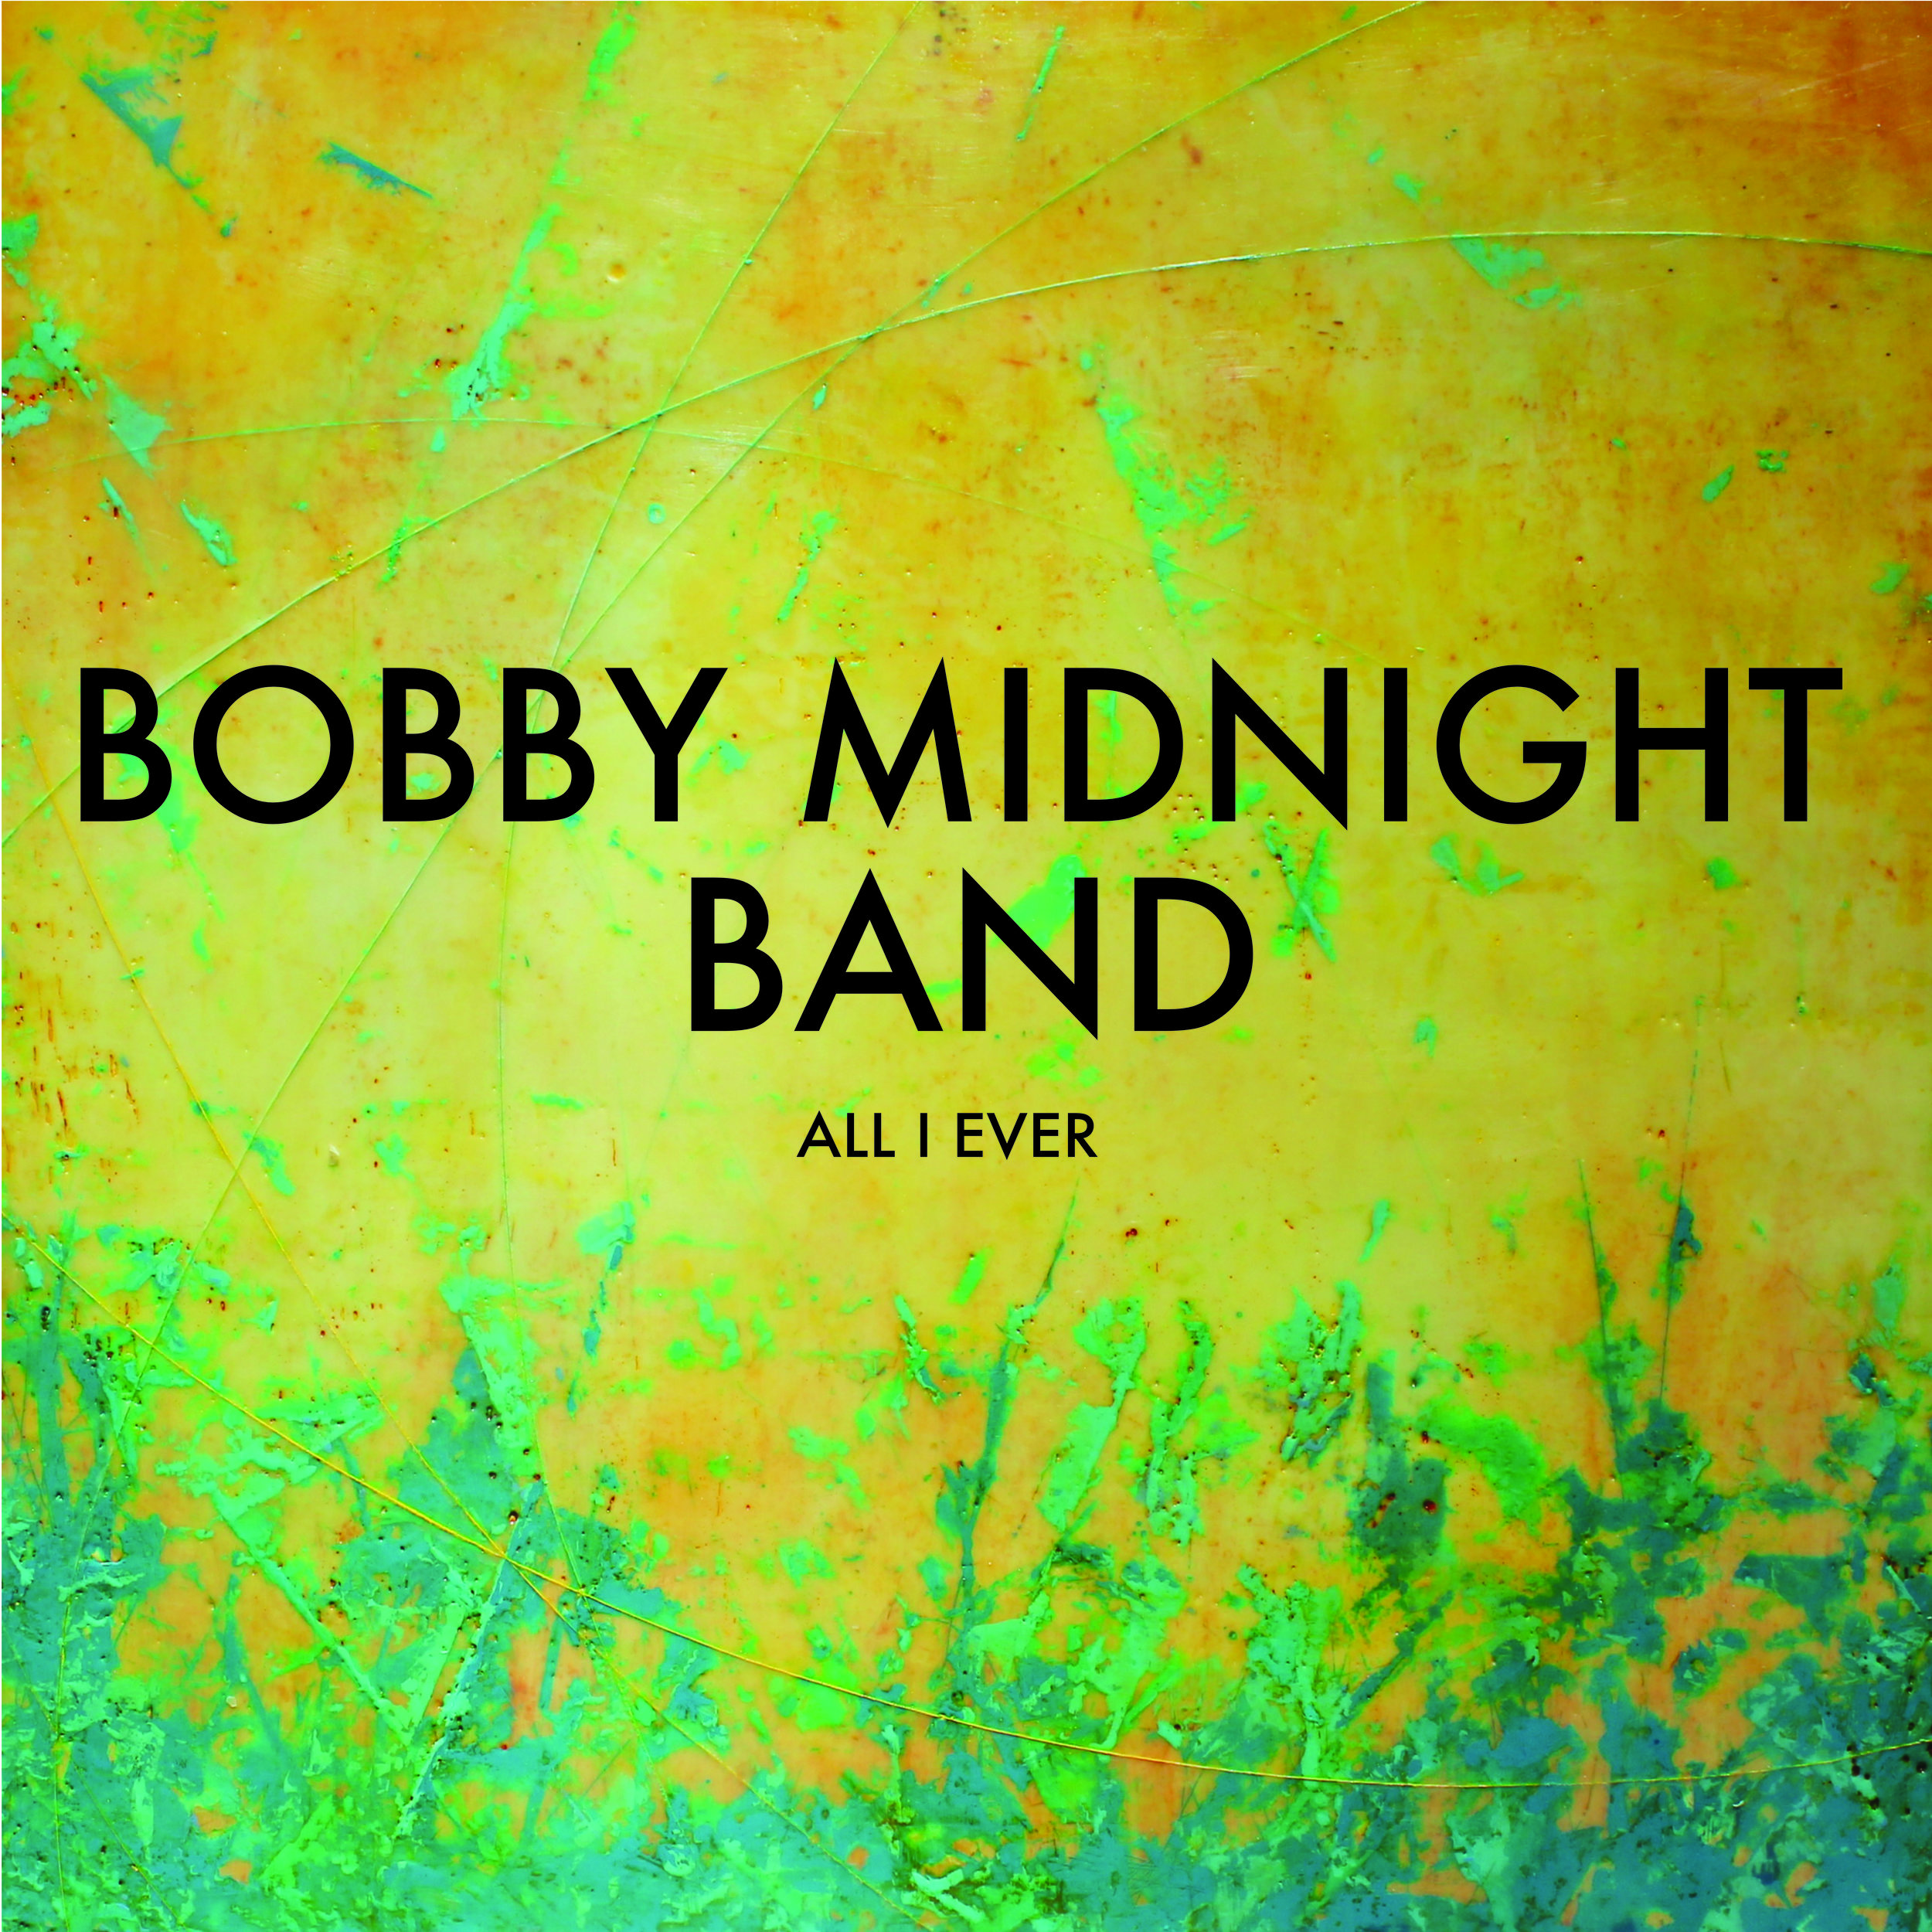 Bobby Midnight Band - All I Ever (Album Cover).jpg